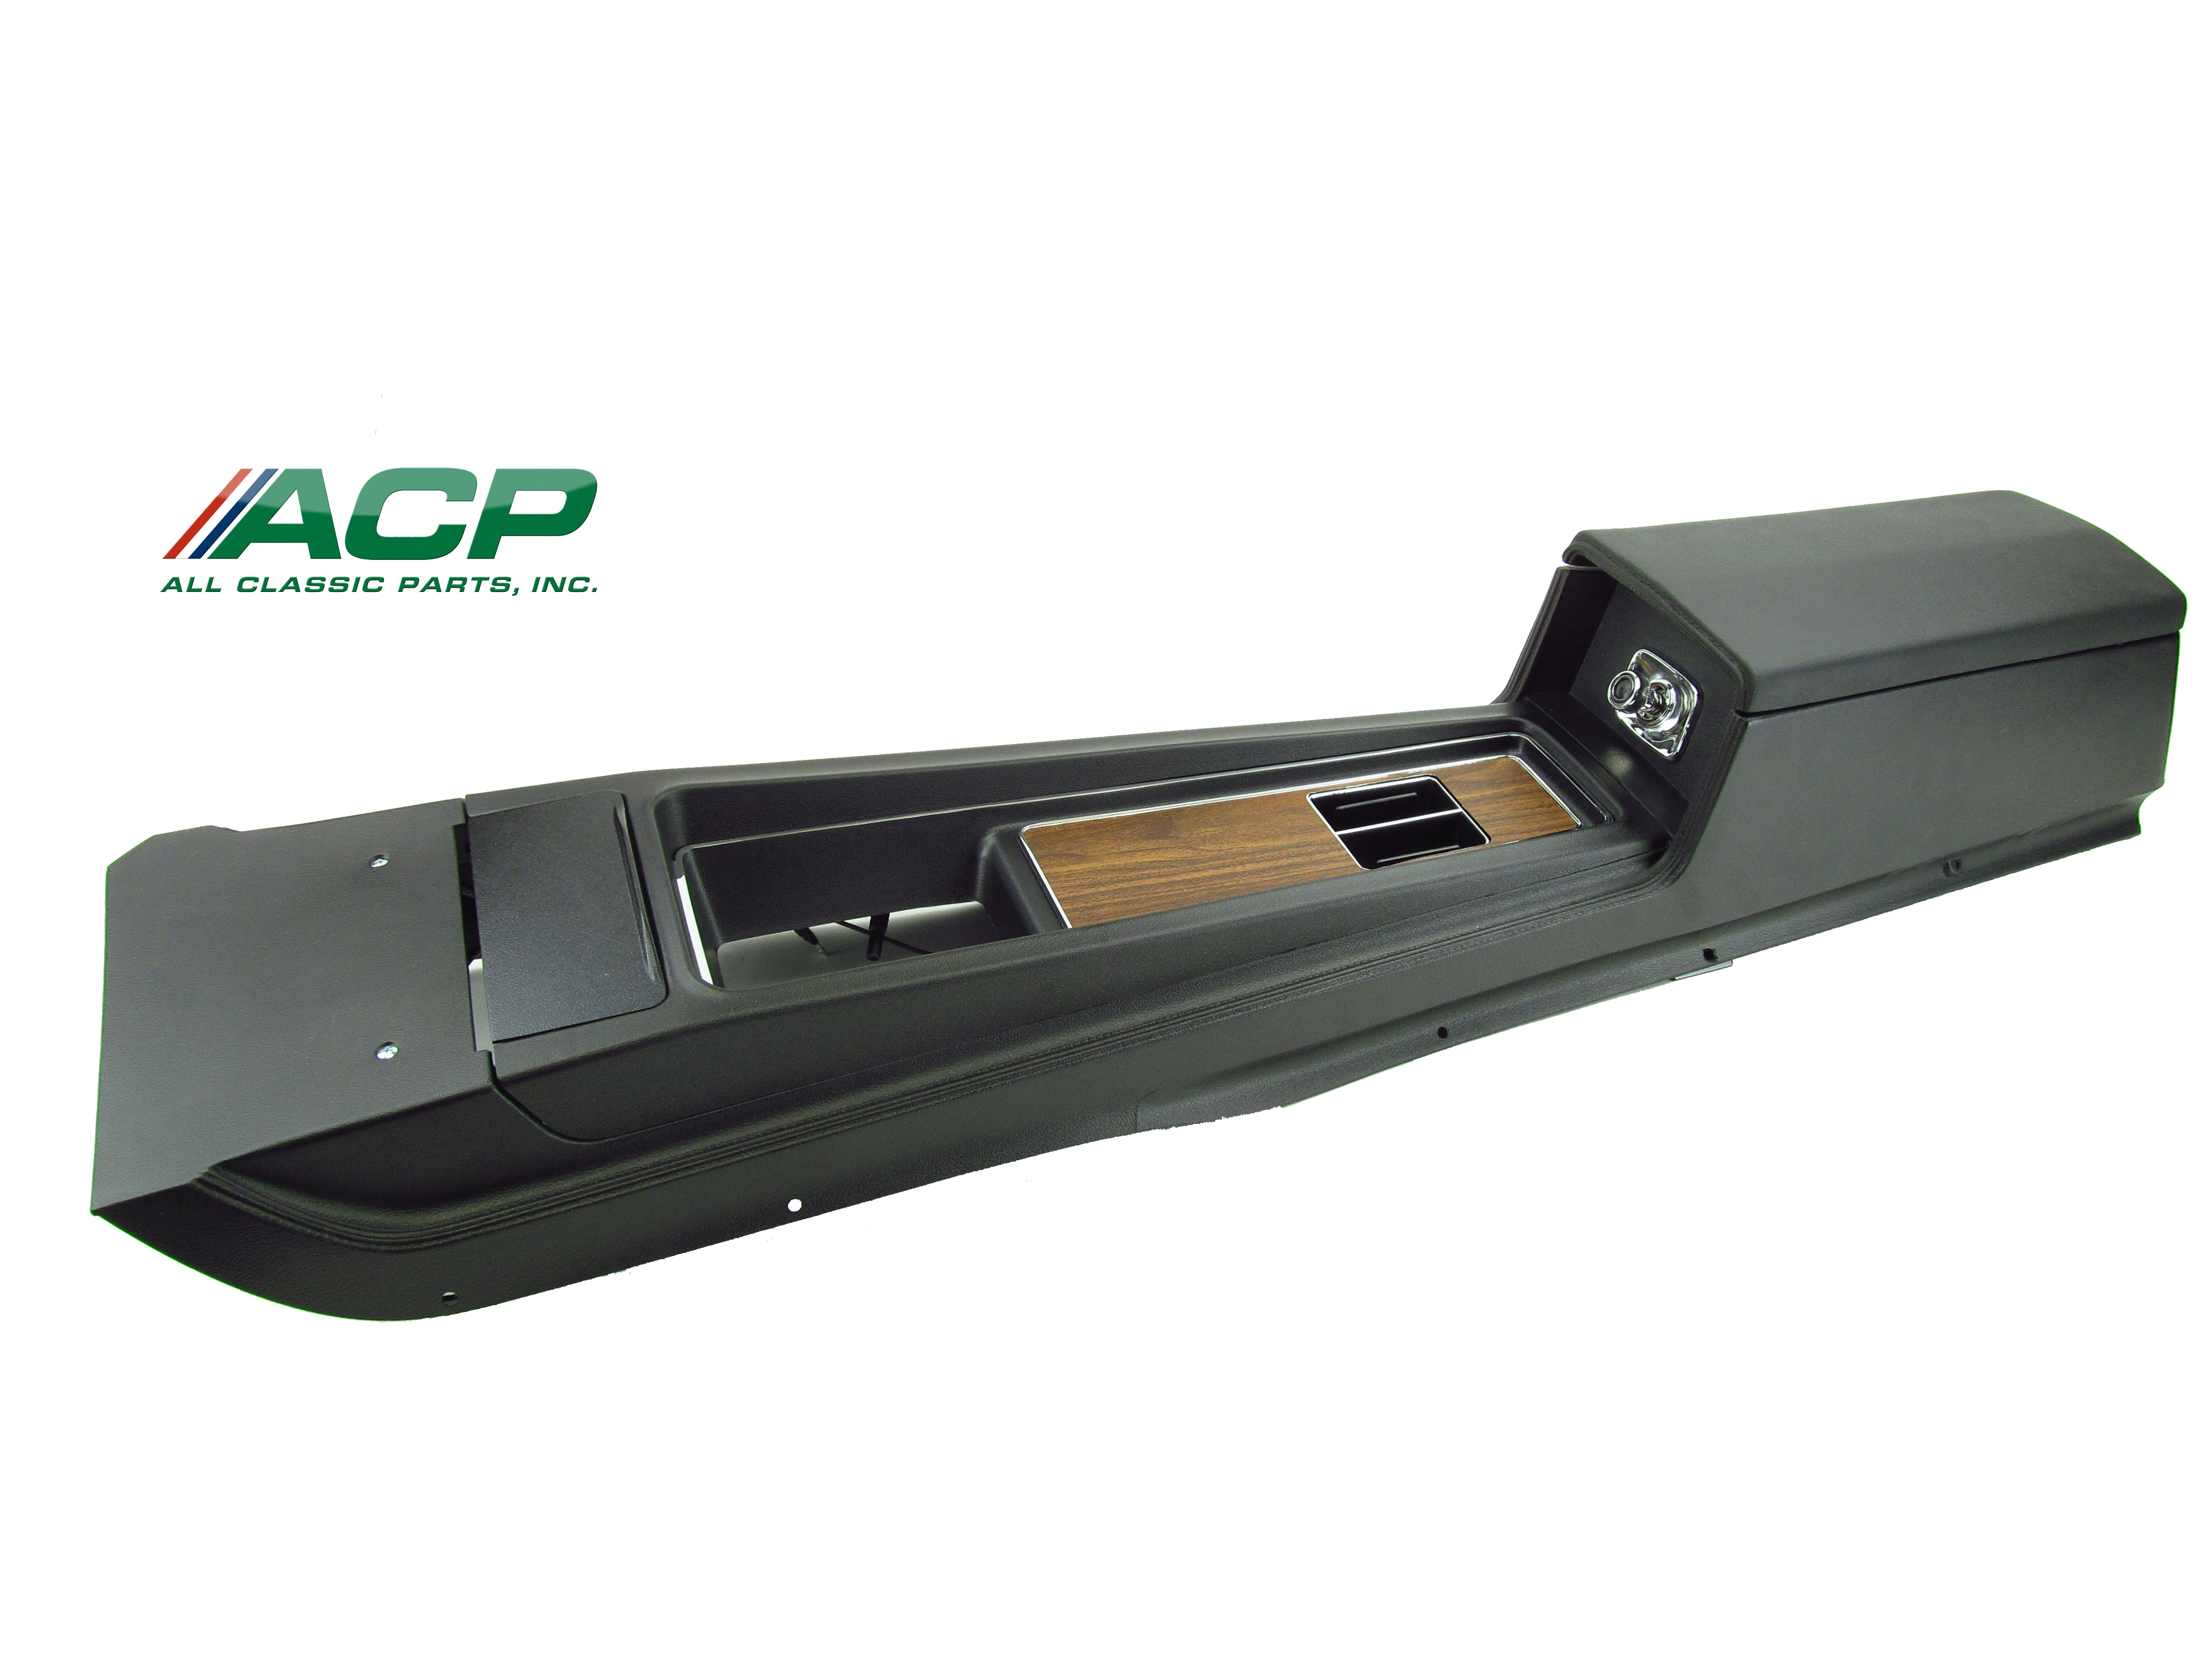 1969 Mustang Console Assembly  New Reproduction W Auto Transmission Black in Color W/ Wood Insert)